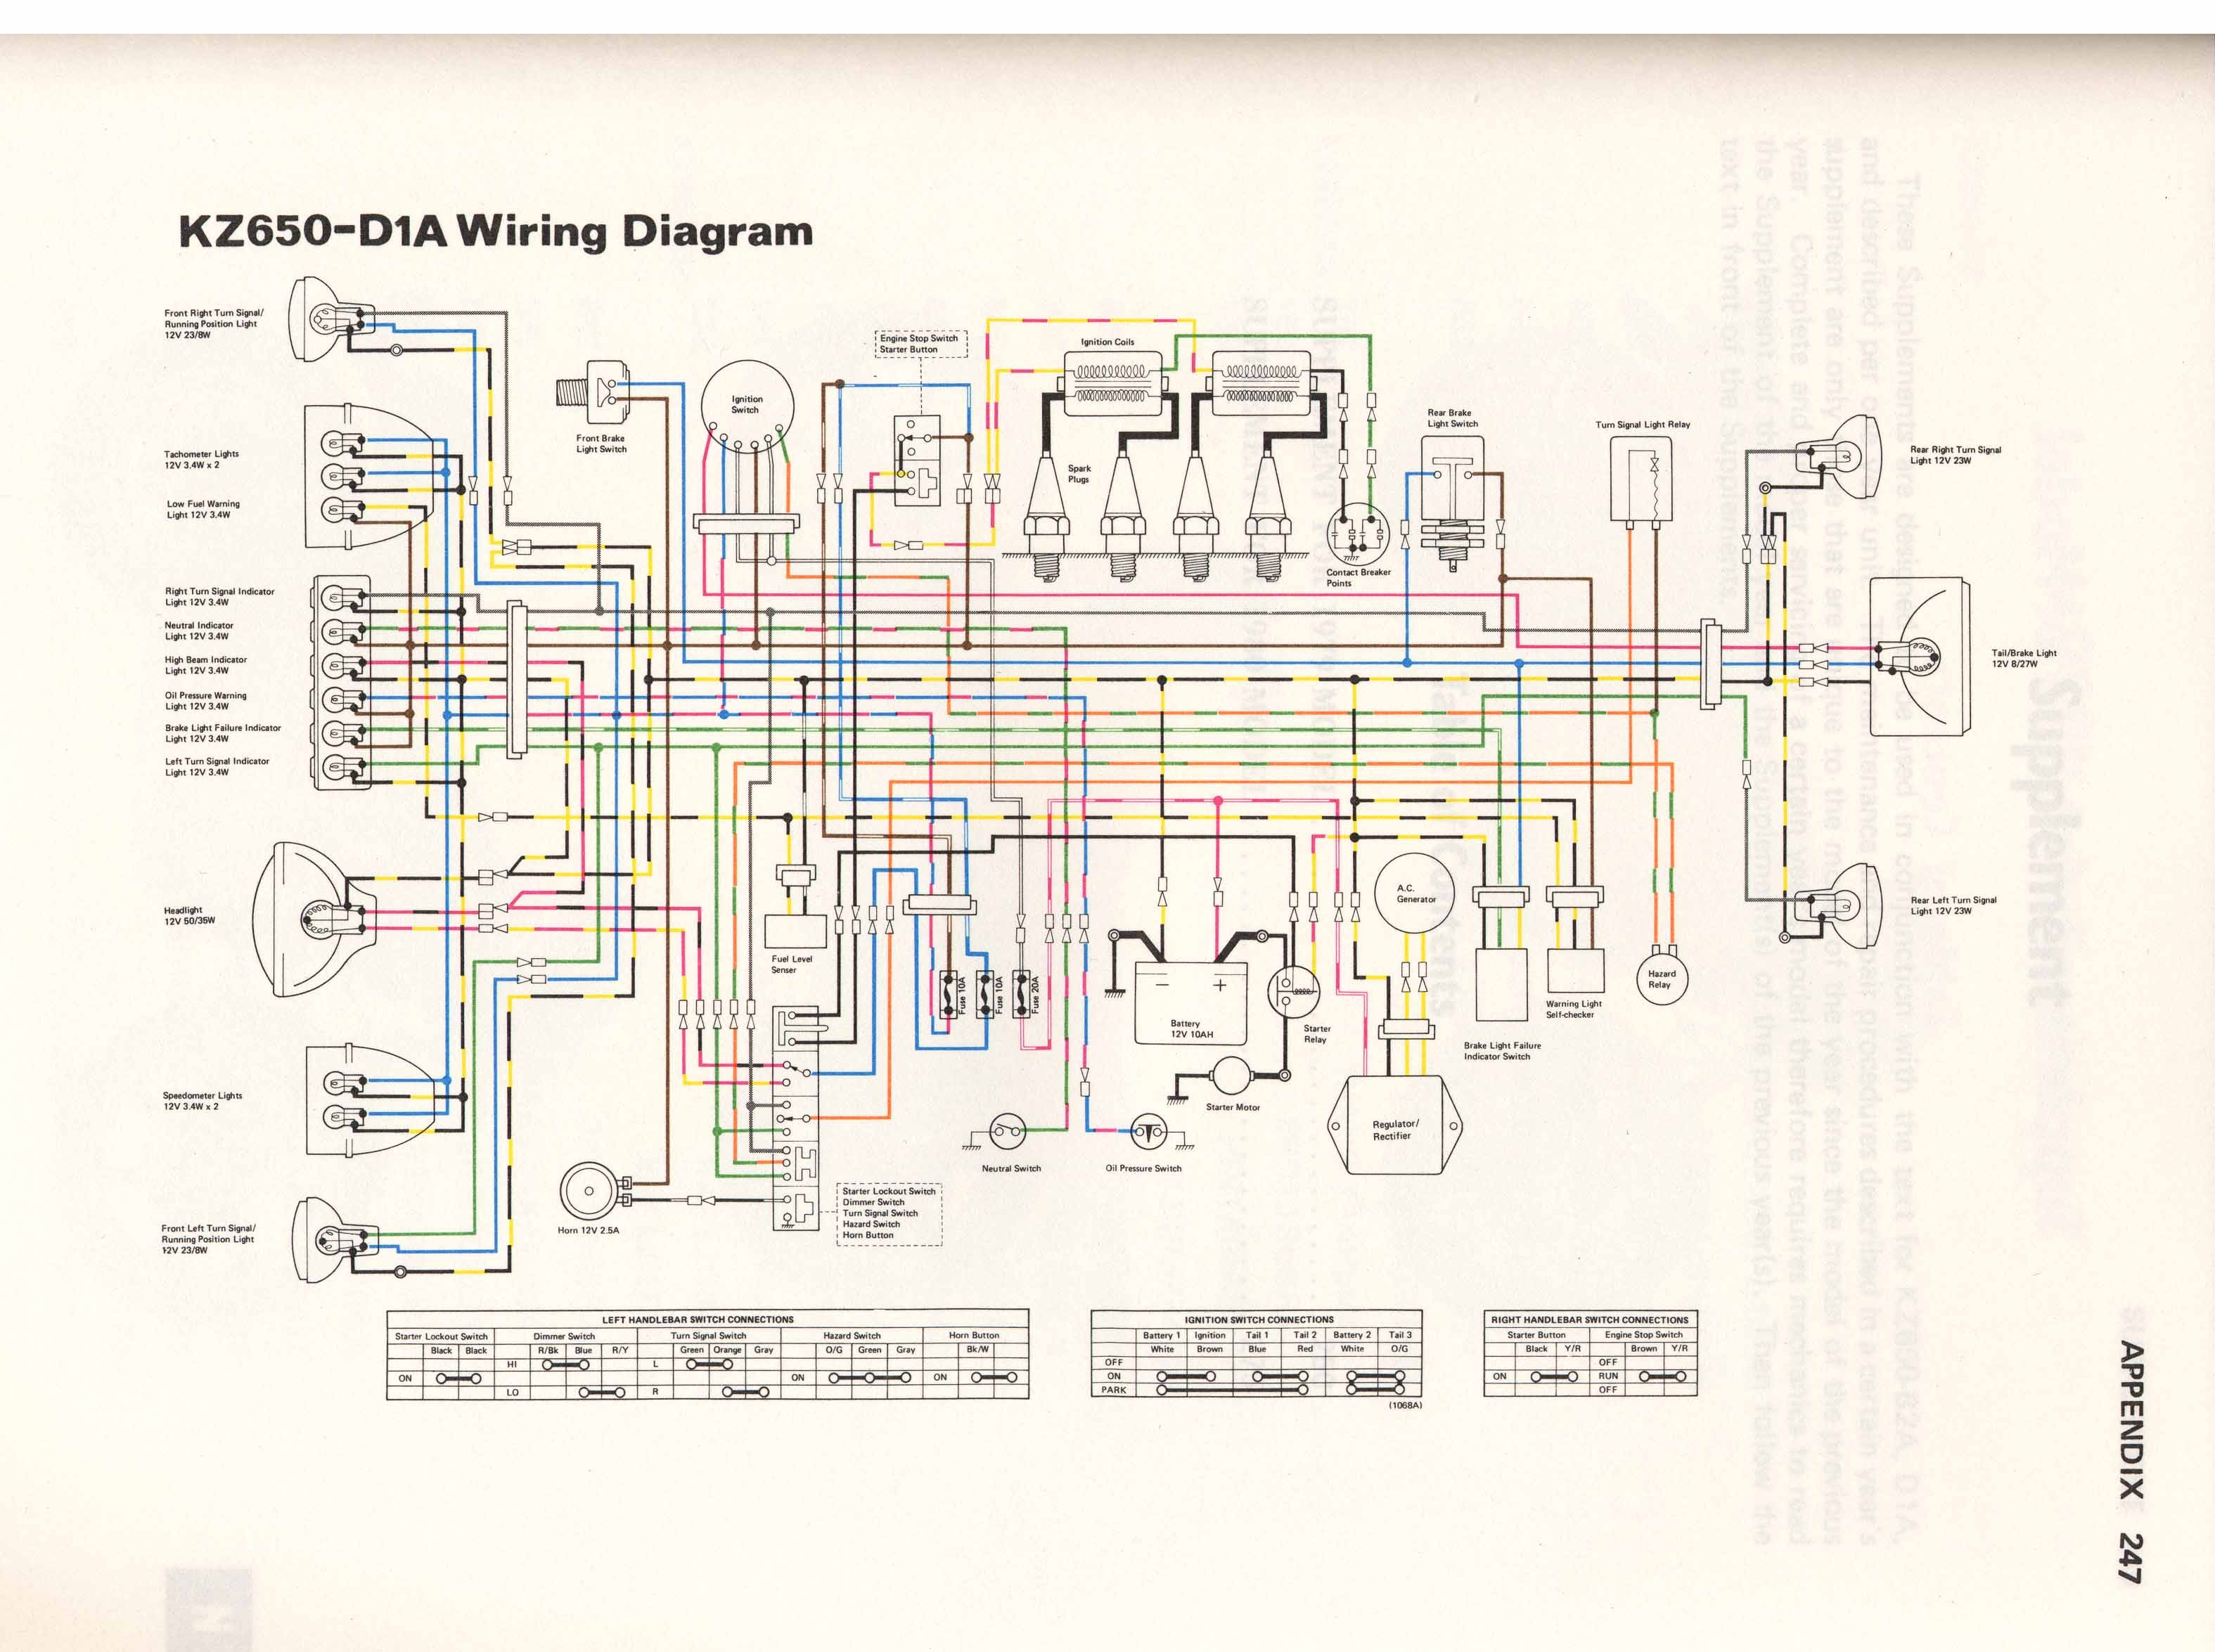 1982 Kawasaki 750 Wiring Diagram Complete Wiring Diagrams \u2022 Zx7r Wiring -Diagram Wiring Diagram For Kawasaki Kz750